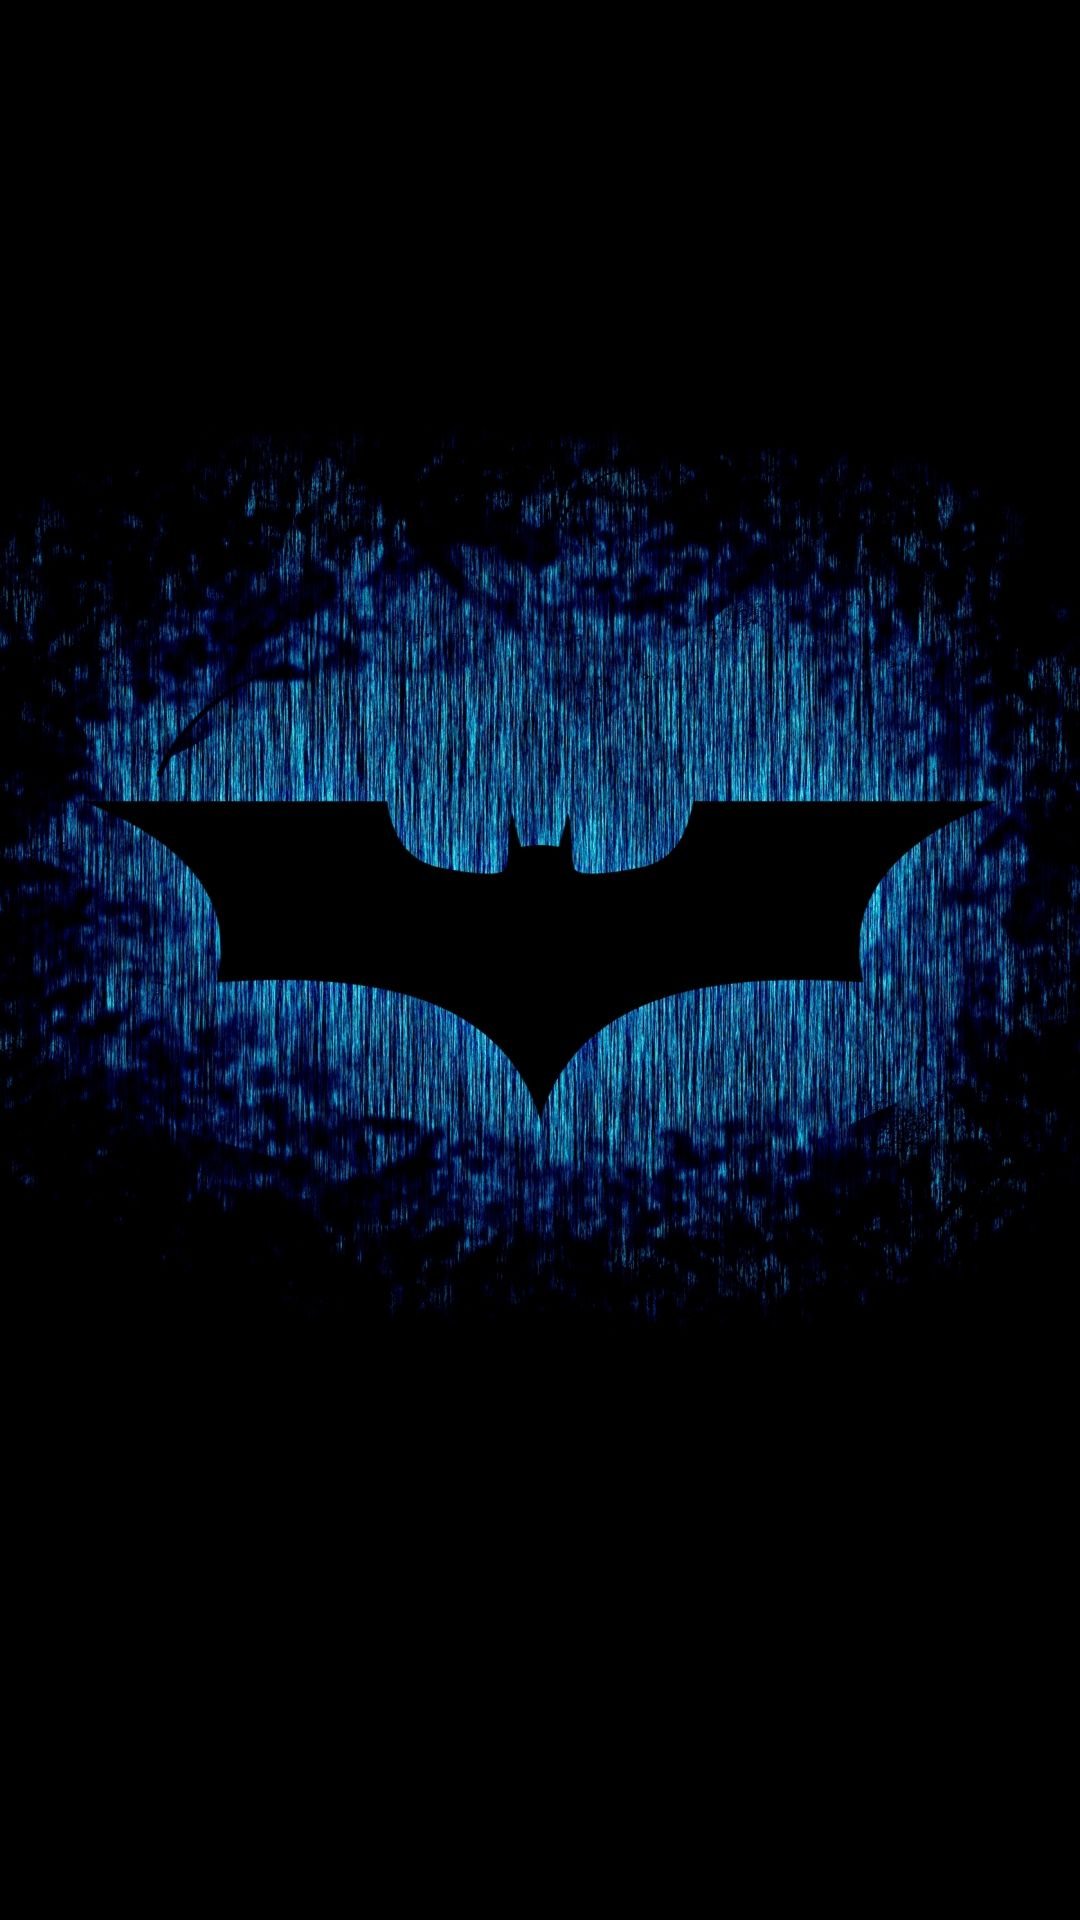 Batman Wallpapers For Iphone 7 Iphone 7 Plus Iphone 6 Plus Batman Wallpaper Iphone Dark Knight Wallpaper Batman Wallpaper